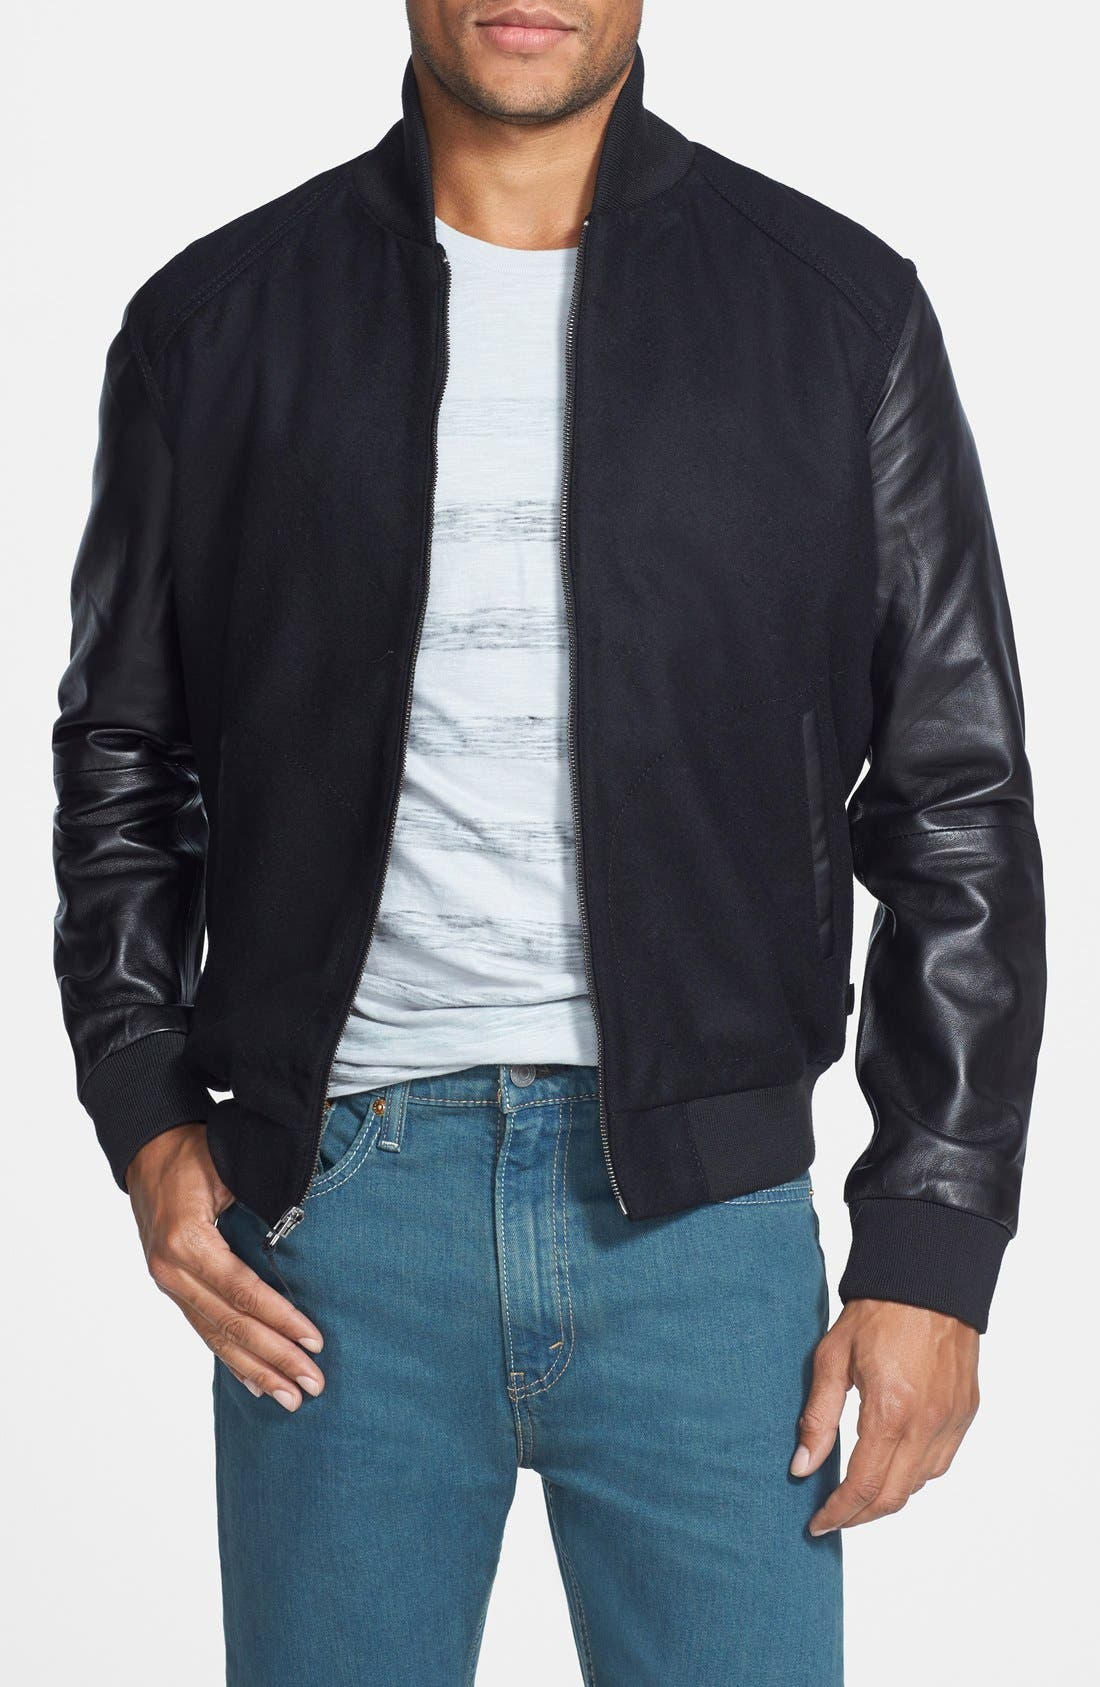 Wool Blend Varsity Jacket with Leather Sleeves, Main, color, 001